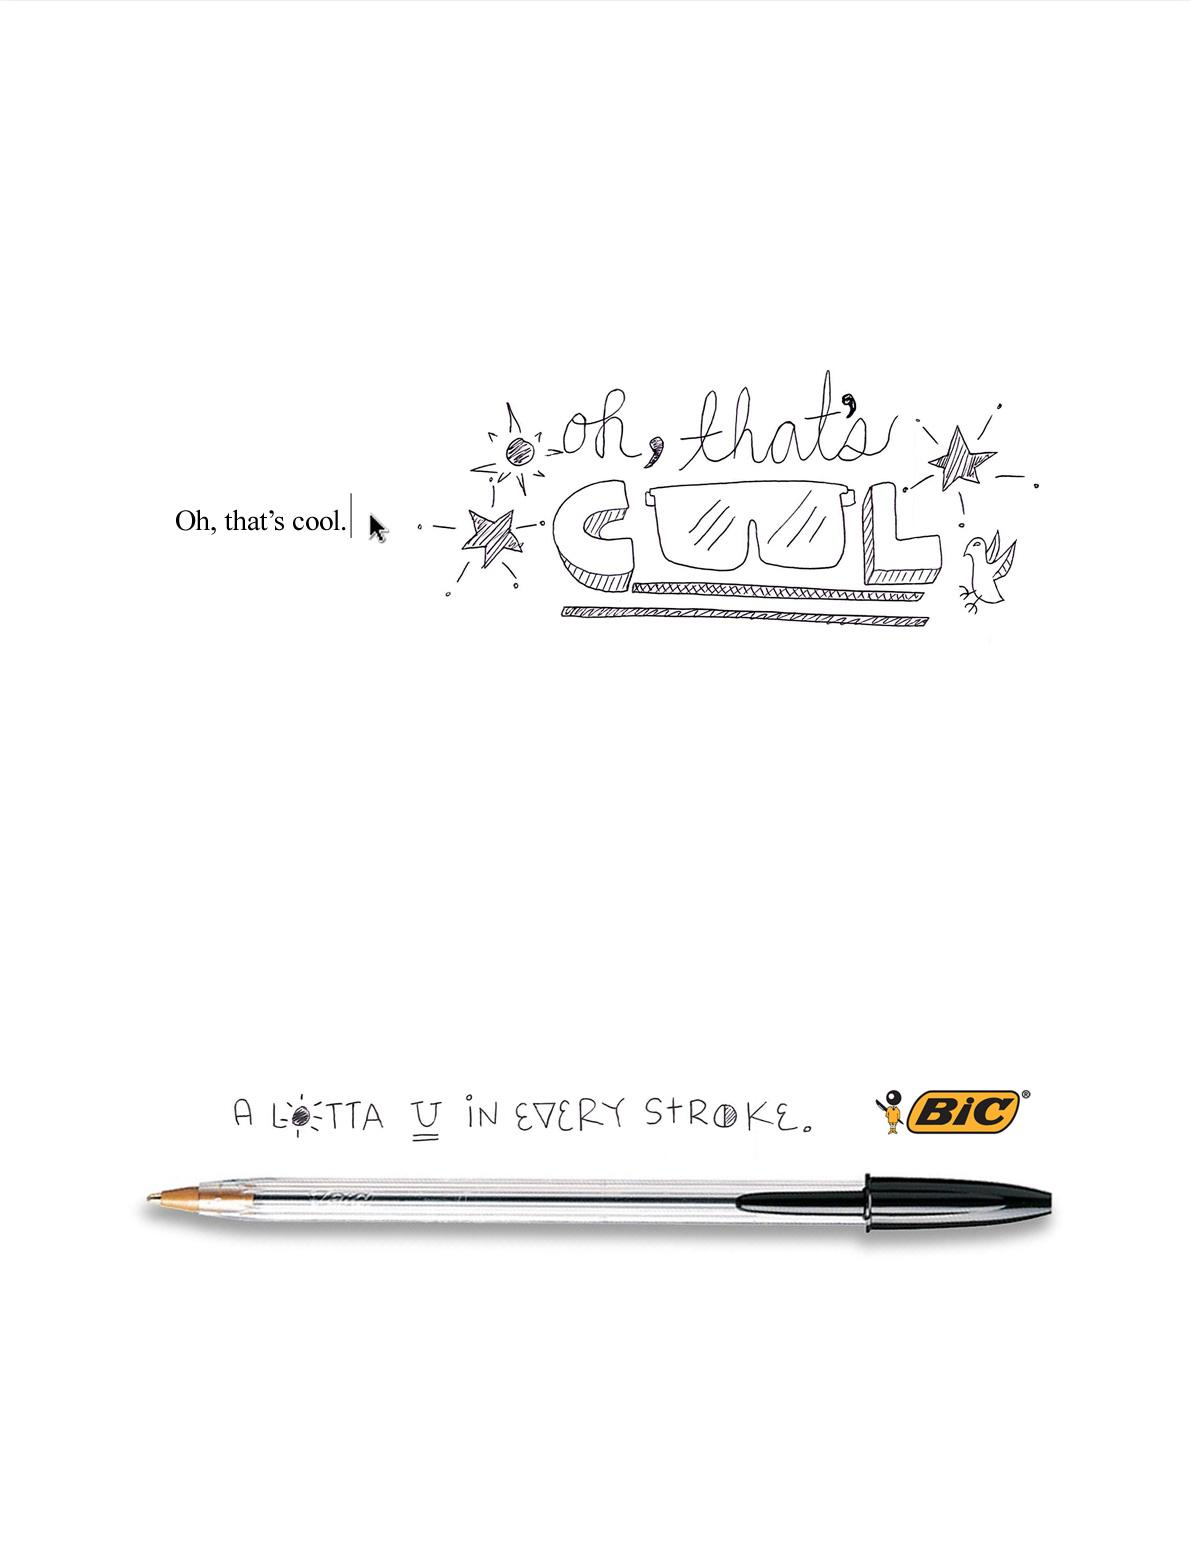 BIC Print Ad -  Oh, that's cool.